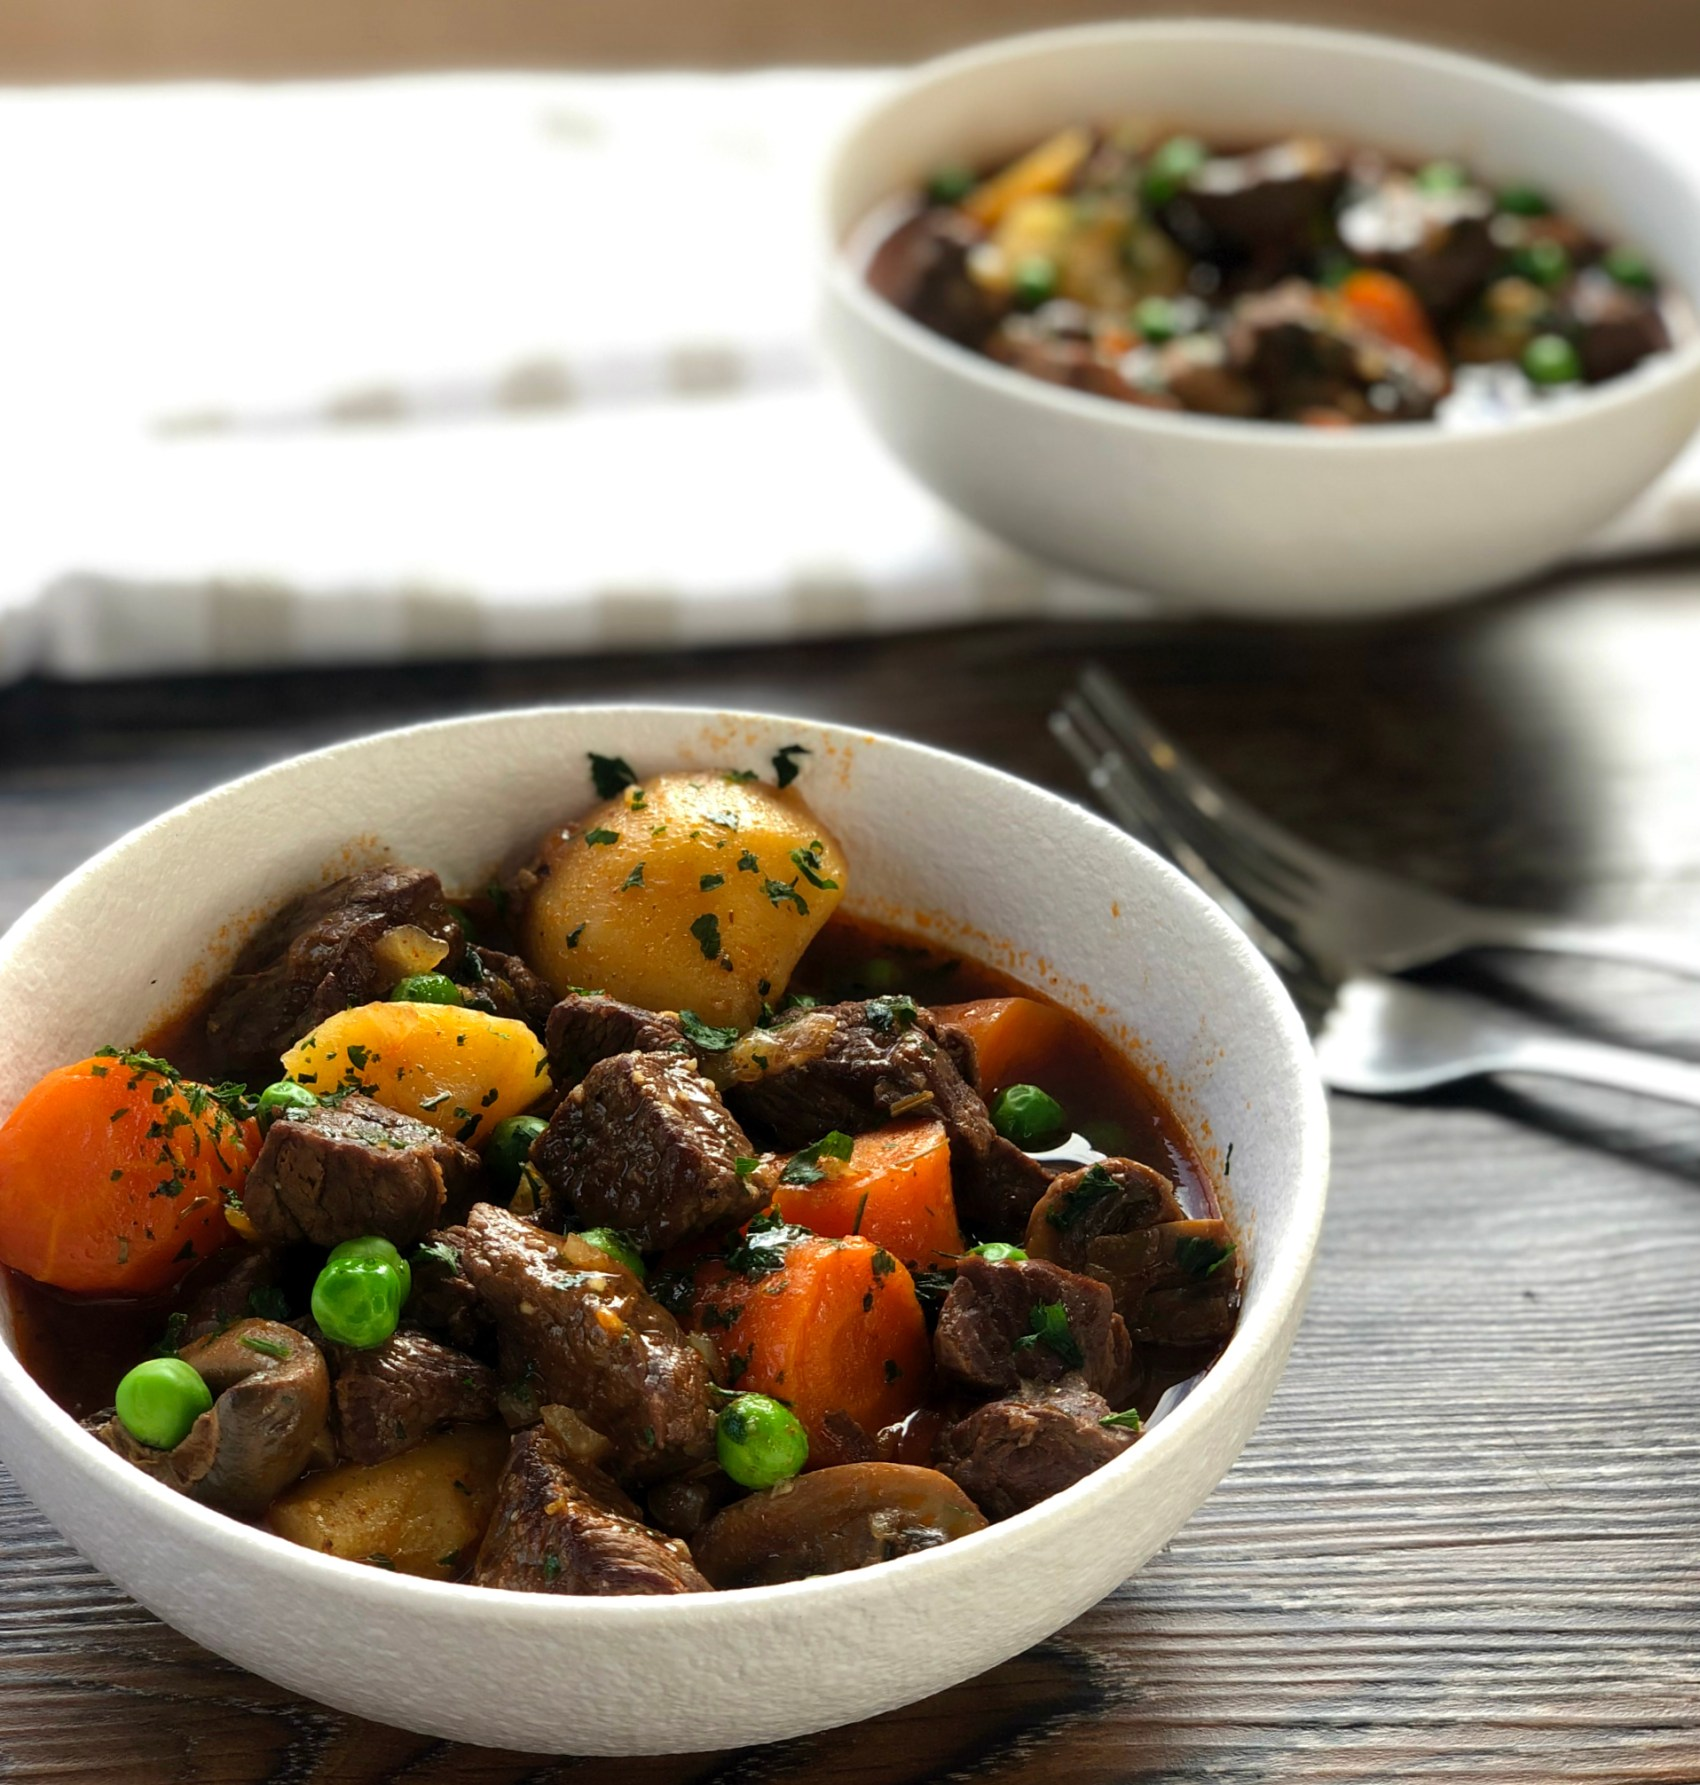 Bowls of Slow Cooker Beef Stew with veges